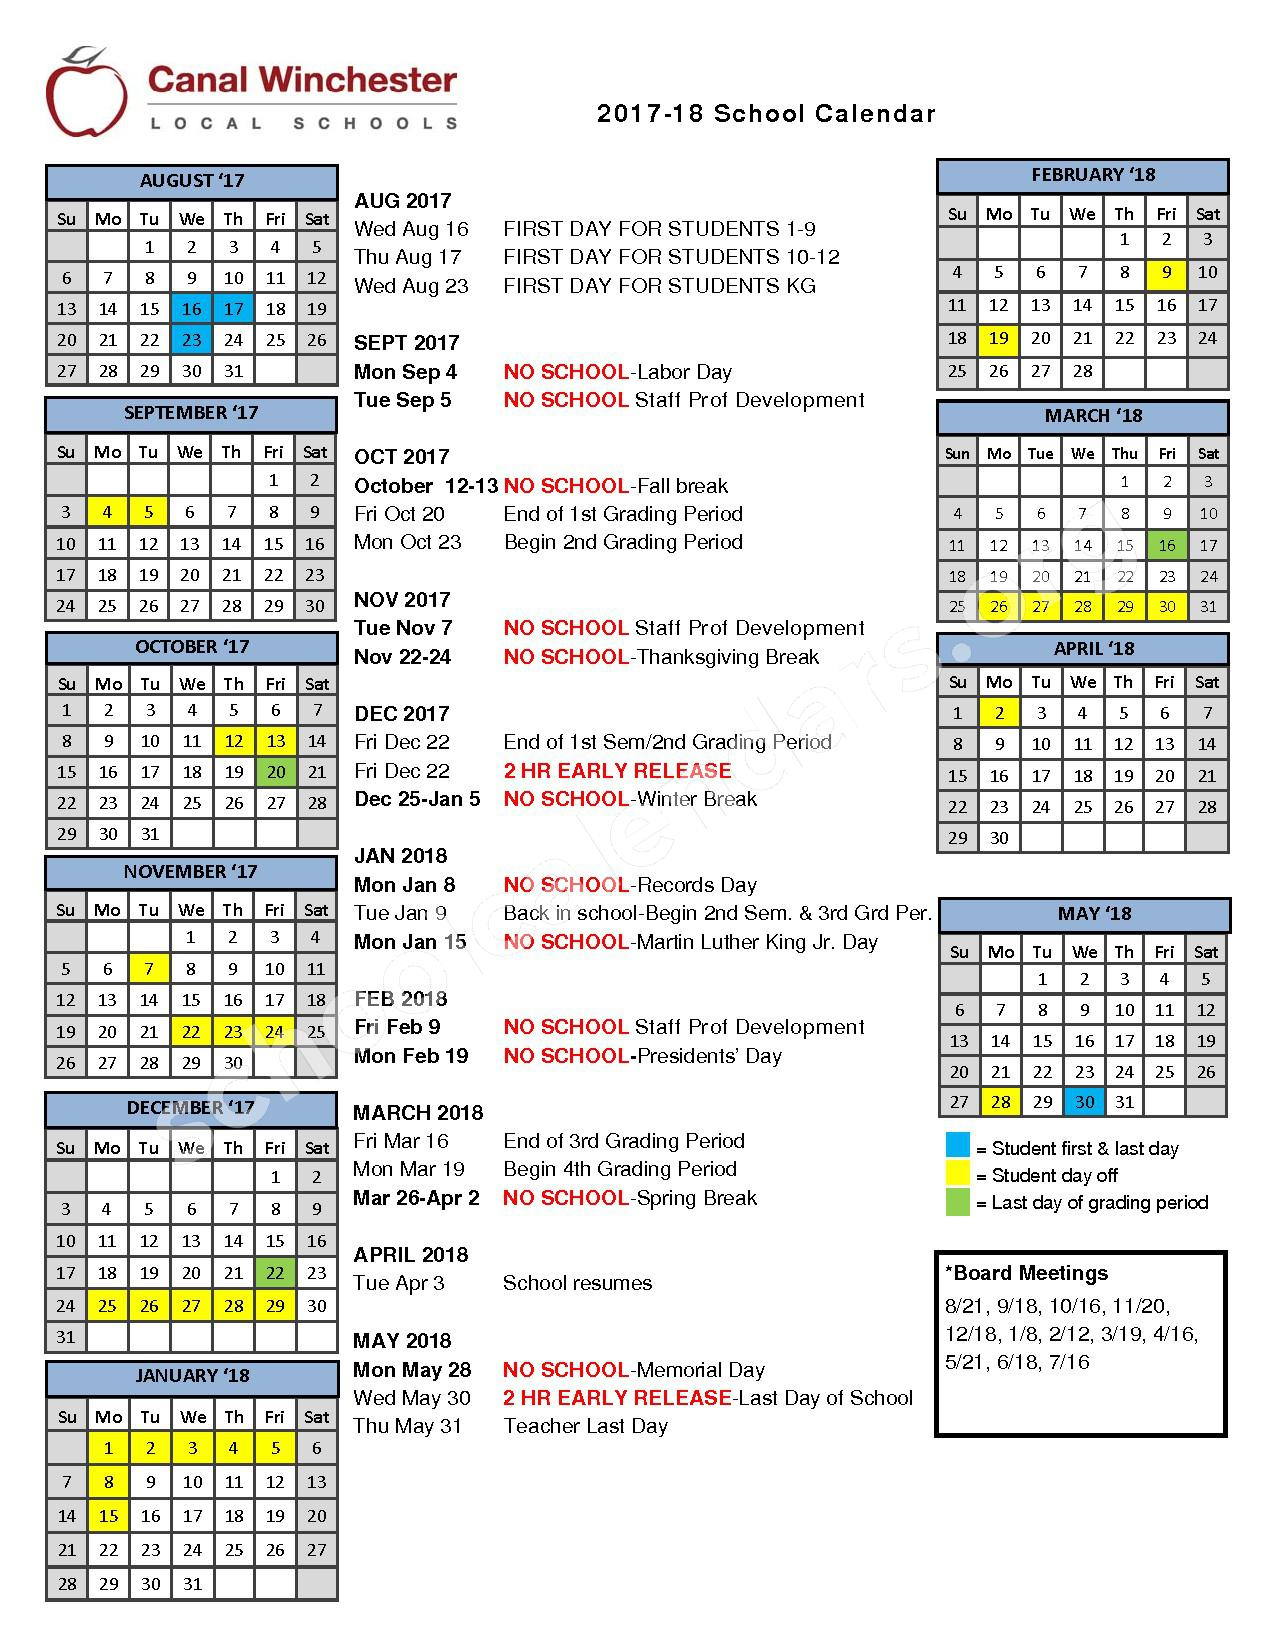 2017 - 2018 District Calendar – Canal Winchester Local Schools – page 1